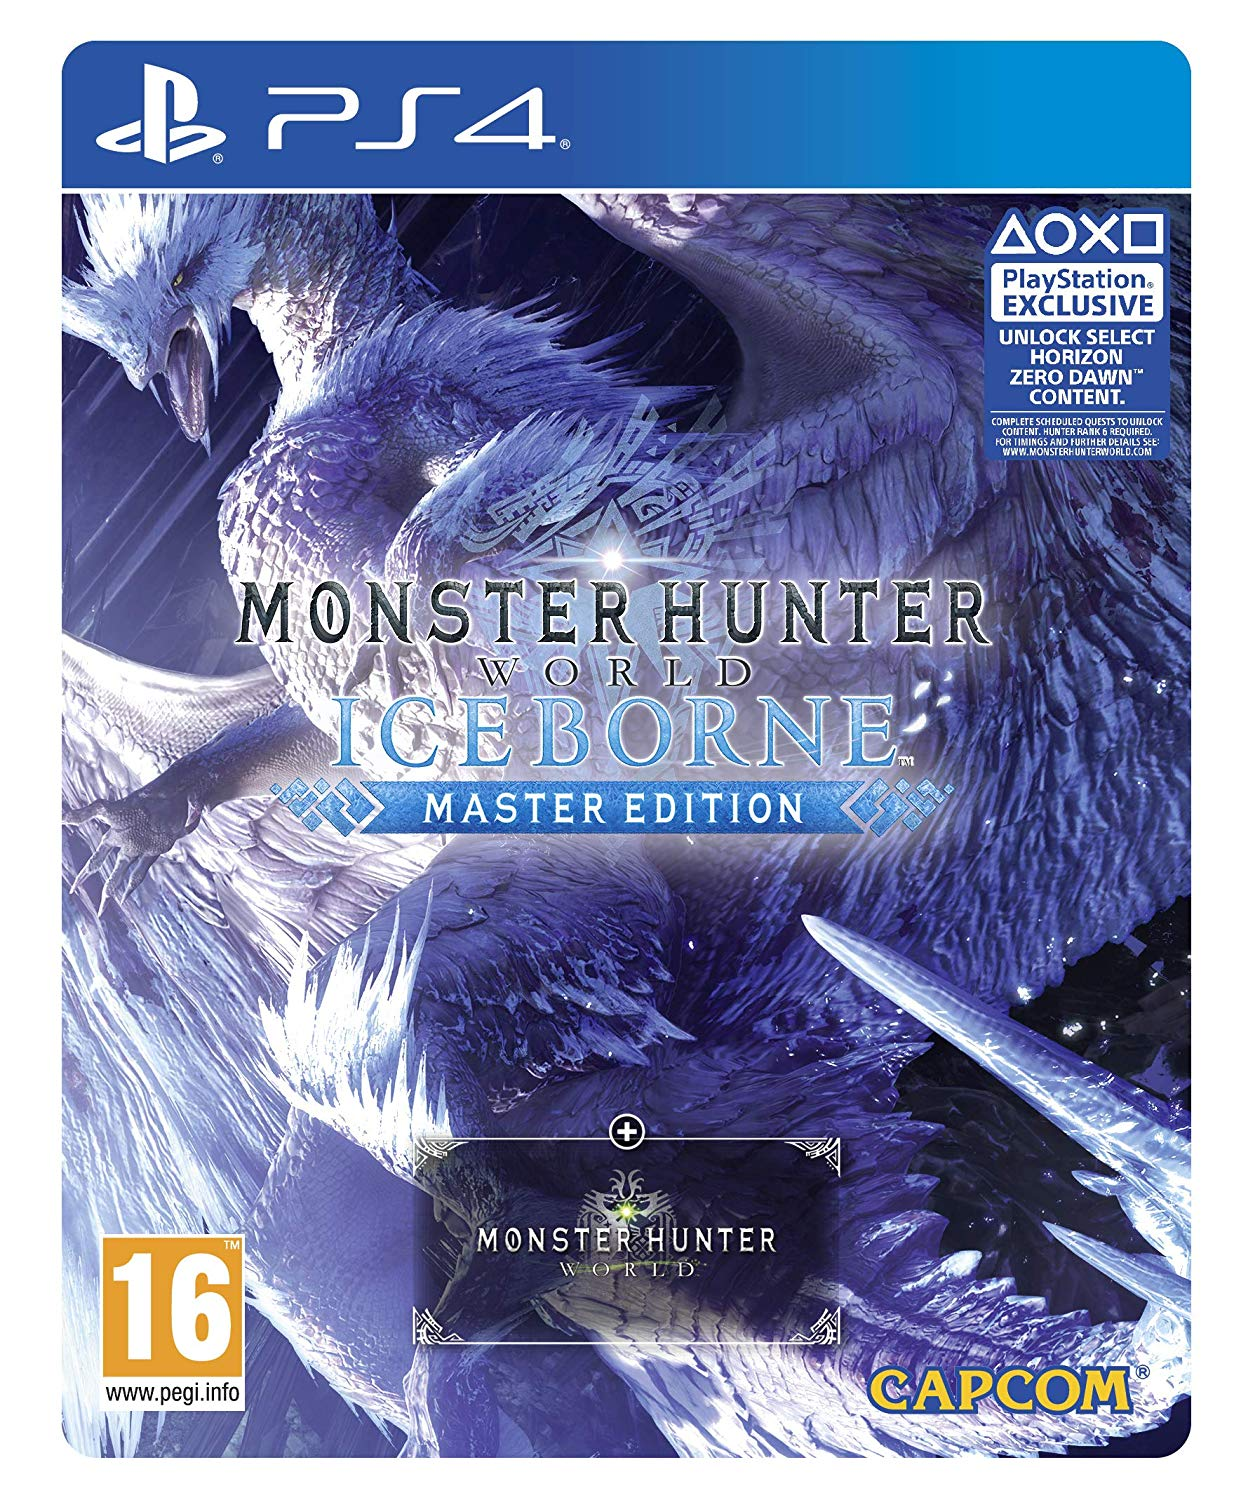 Monster Hunter World Iceborne Master Edition Steelbook Edition - PlayStation 4 Játékok